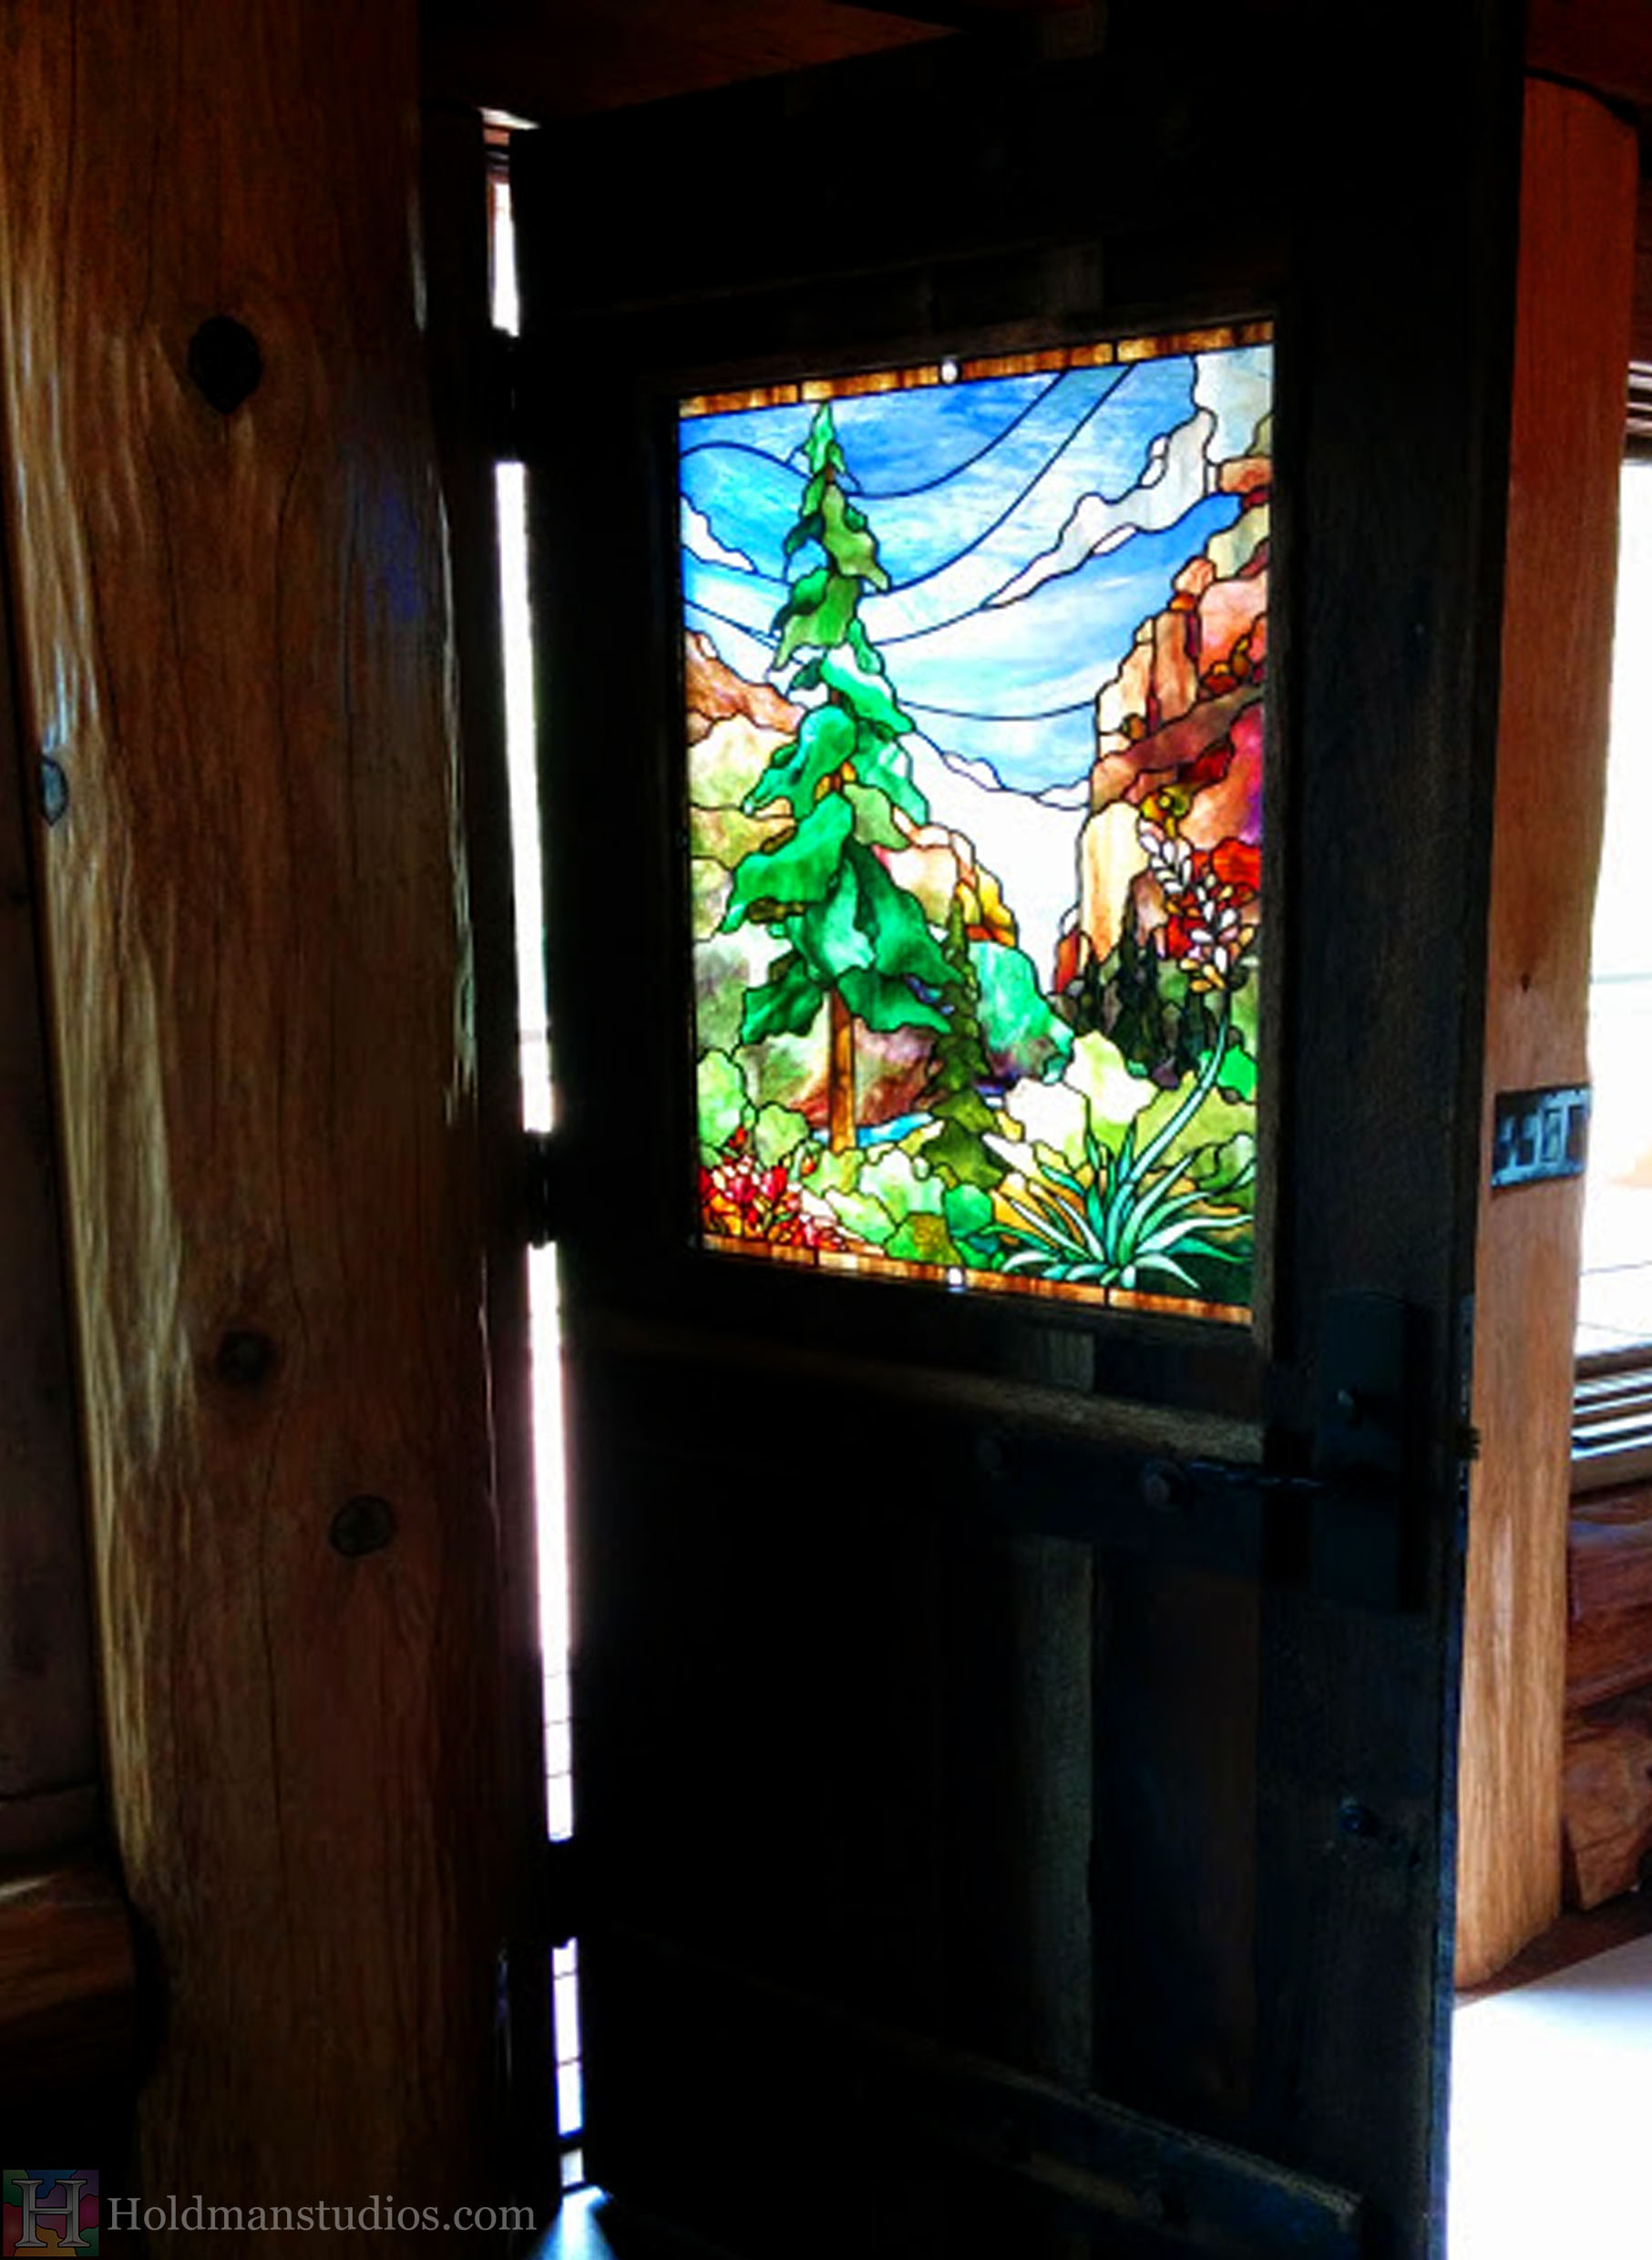 Stained glass front door window of the sky with clouds, mountains, pine trees,flowers, plants, and leaves.Created by artists under the direction of Tom Holdman at Holdman Studios.